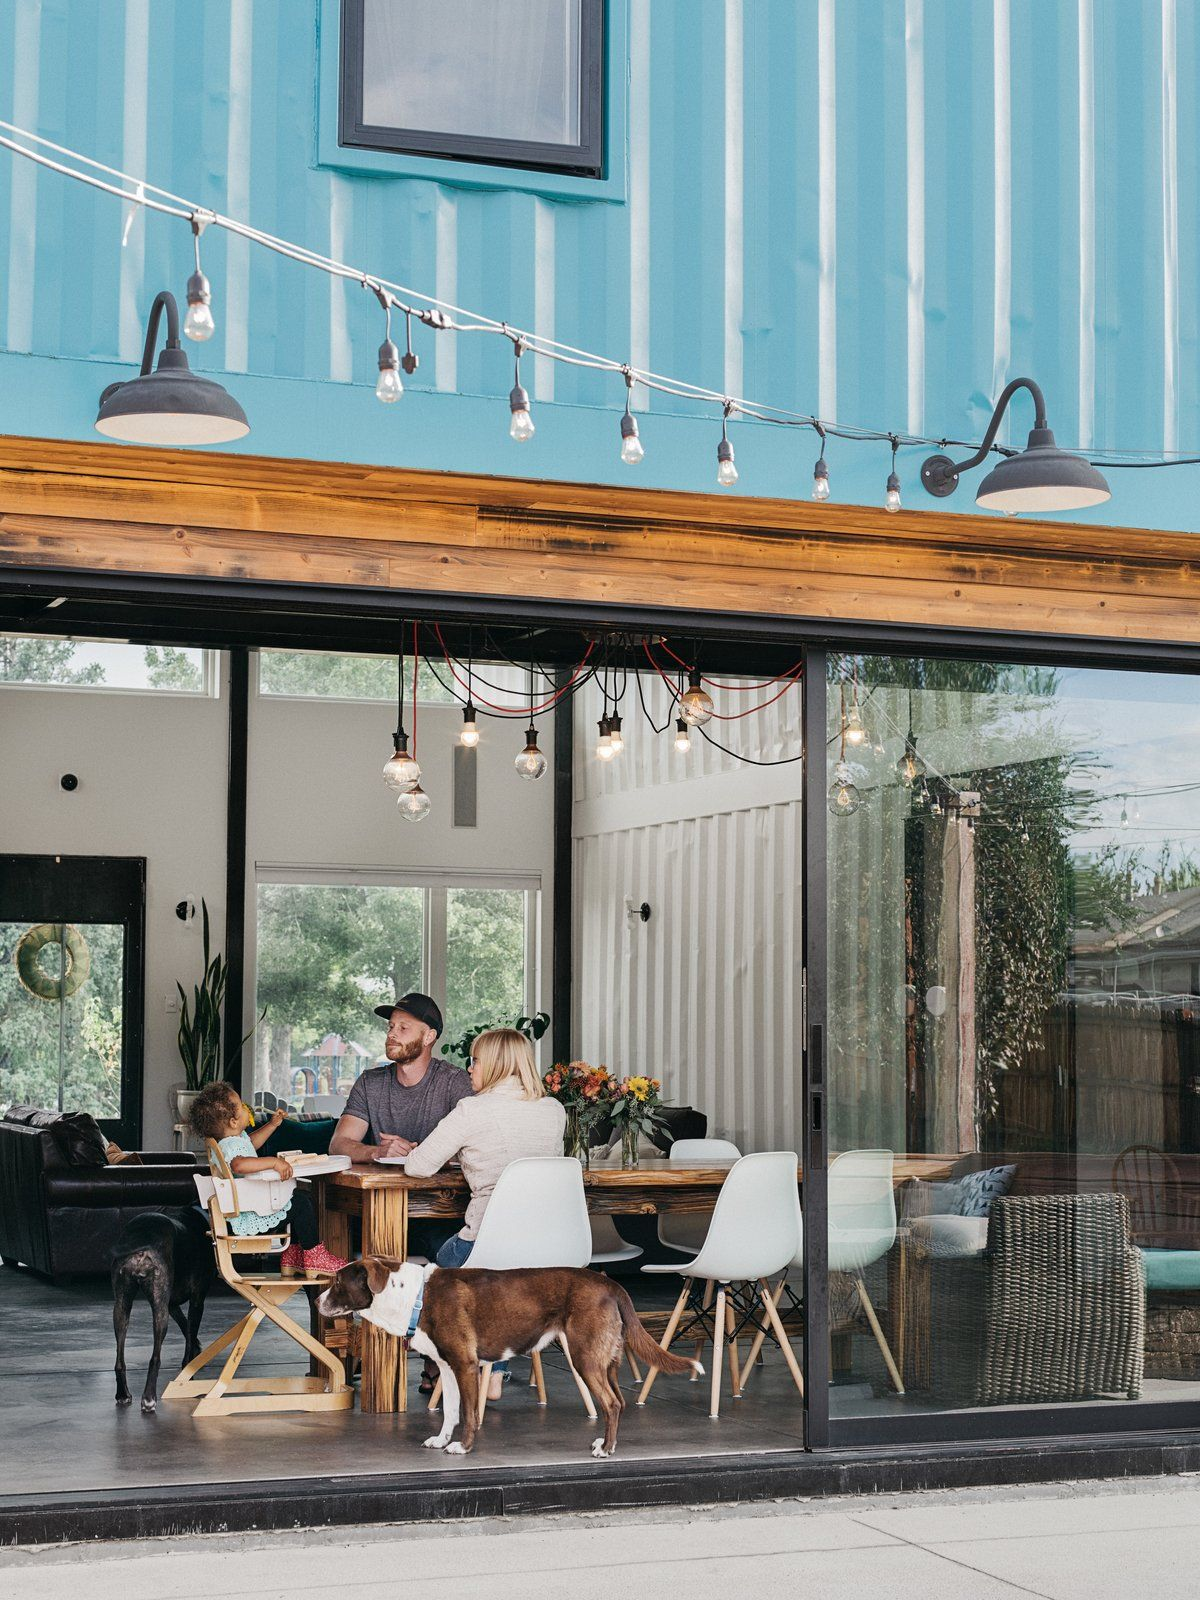 The dining space is done with a wooden table, modern chairs and with bulbs over the dining set